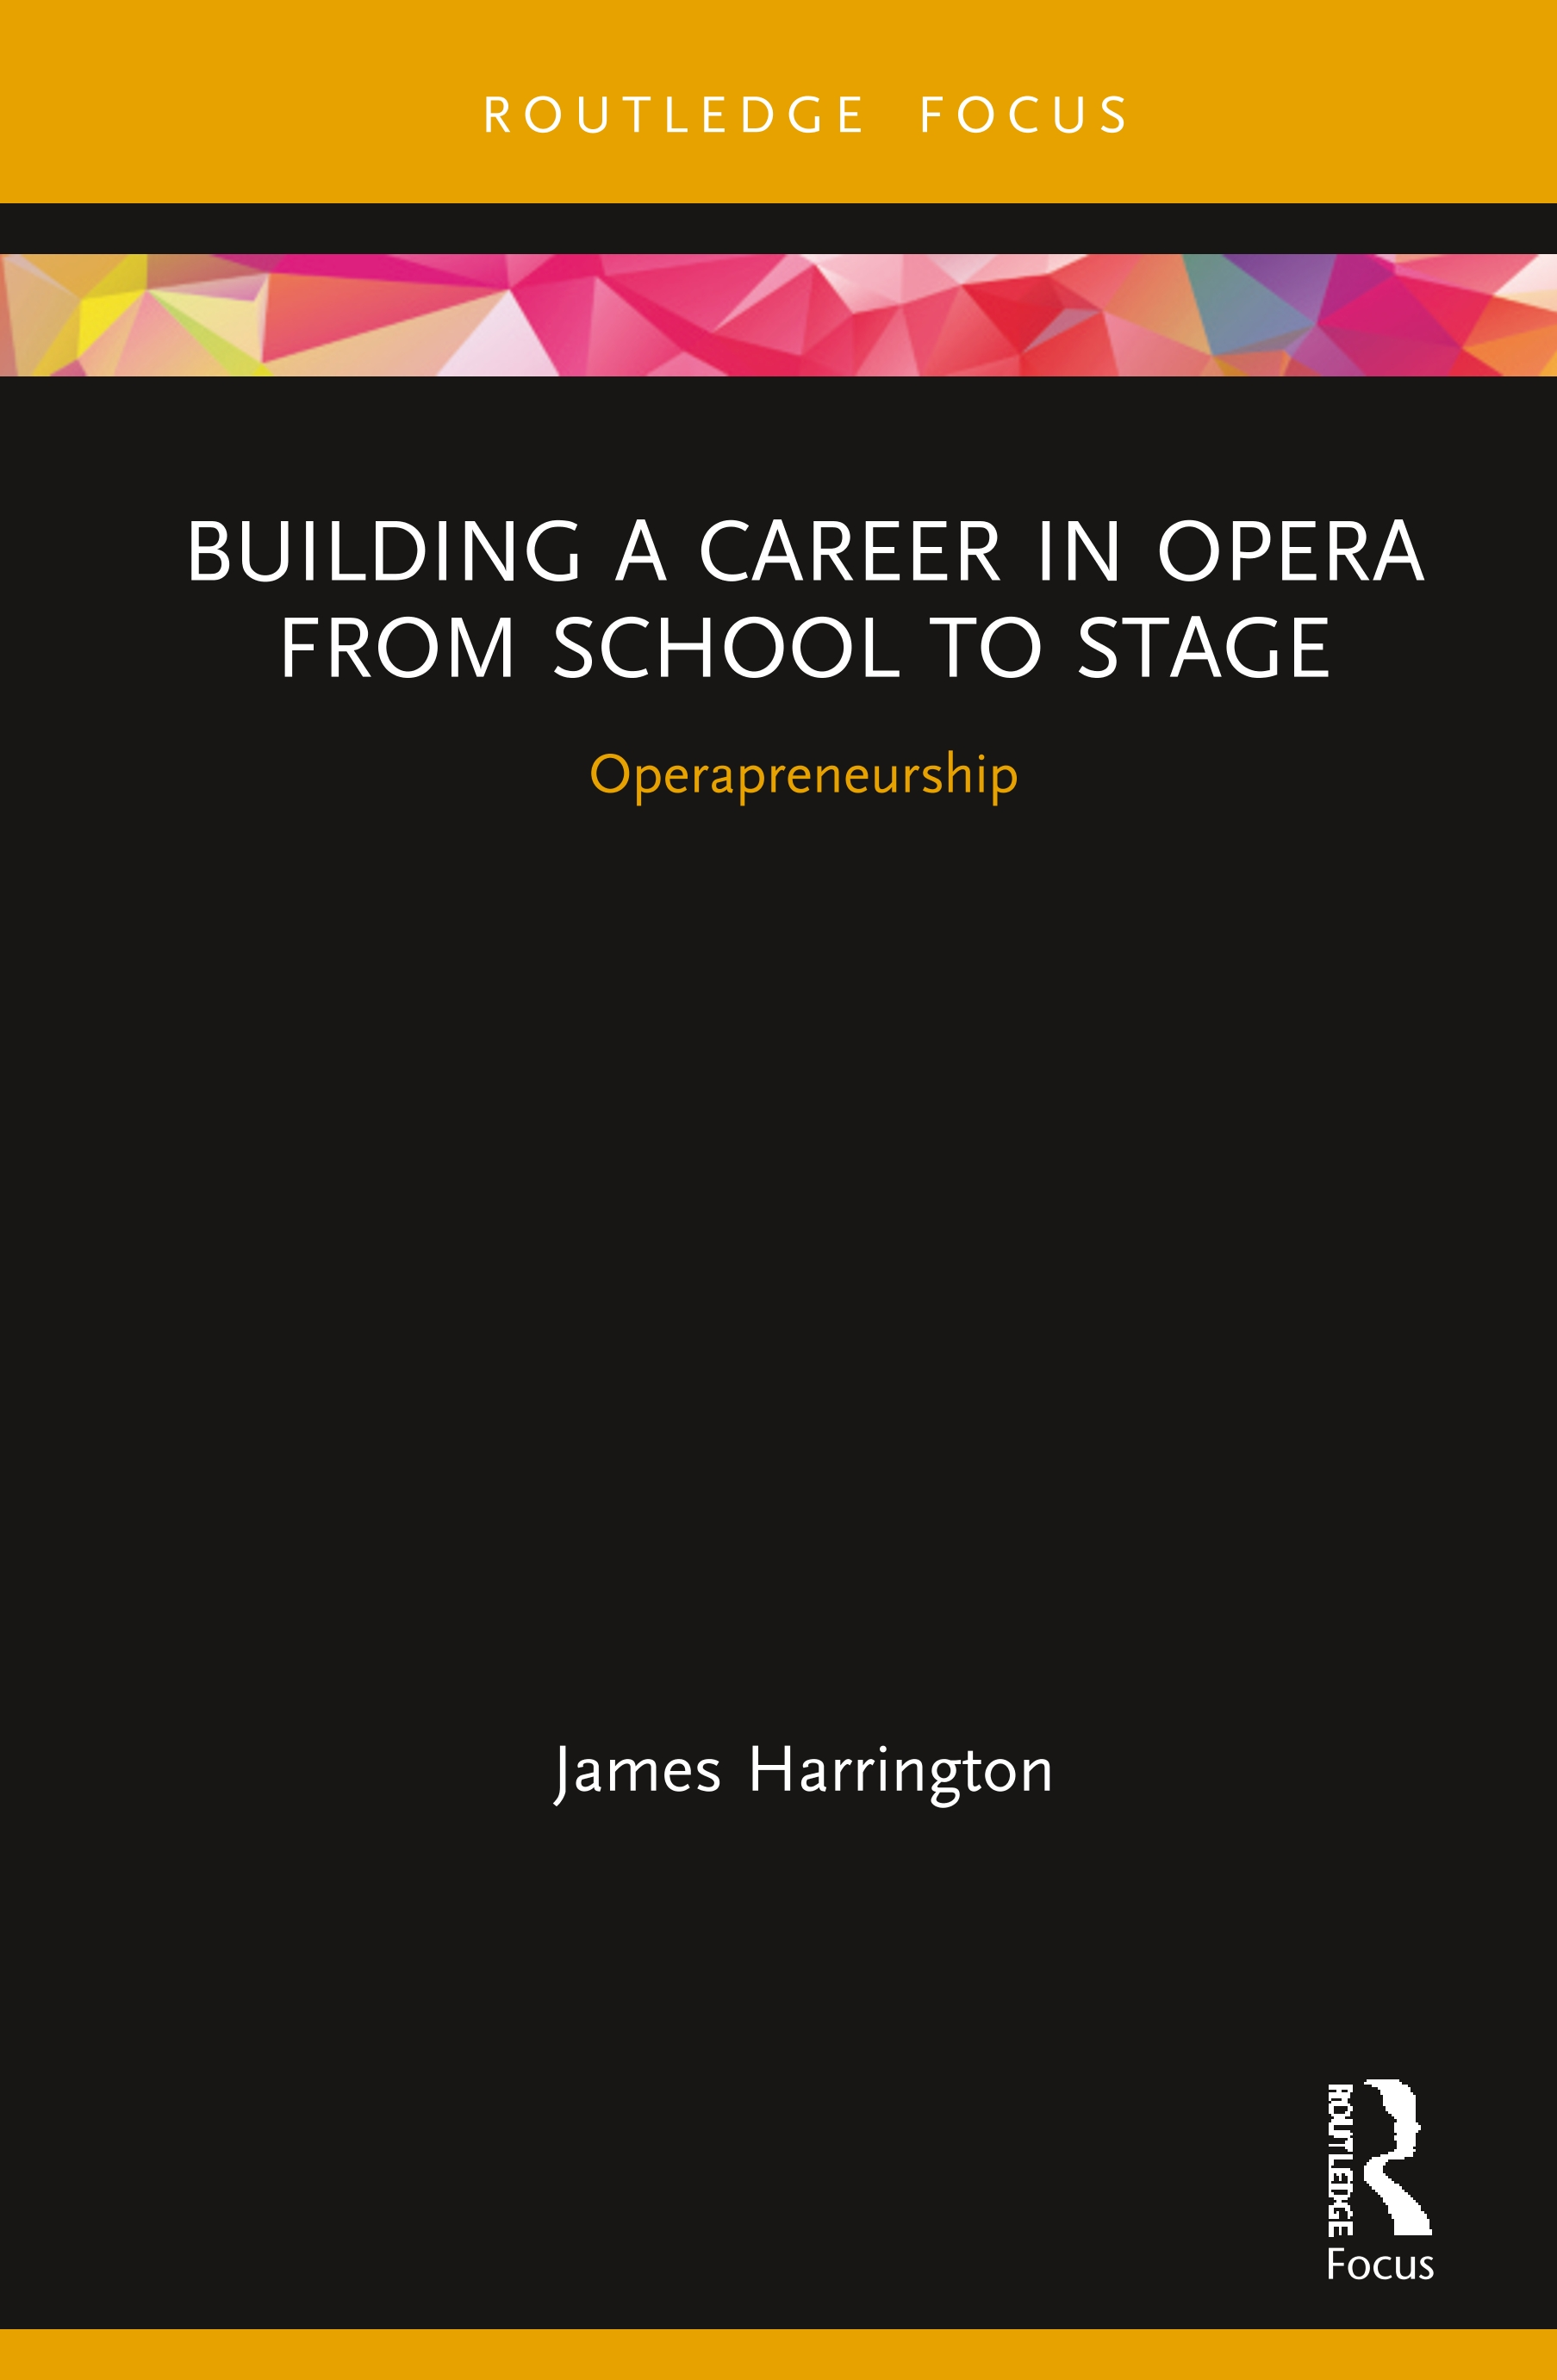 Building a Career in Opera from School to Stage: Operapreneurship